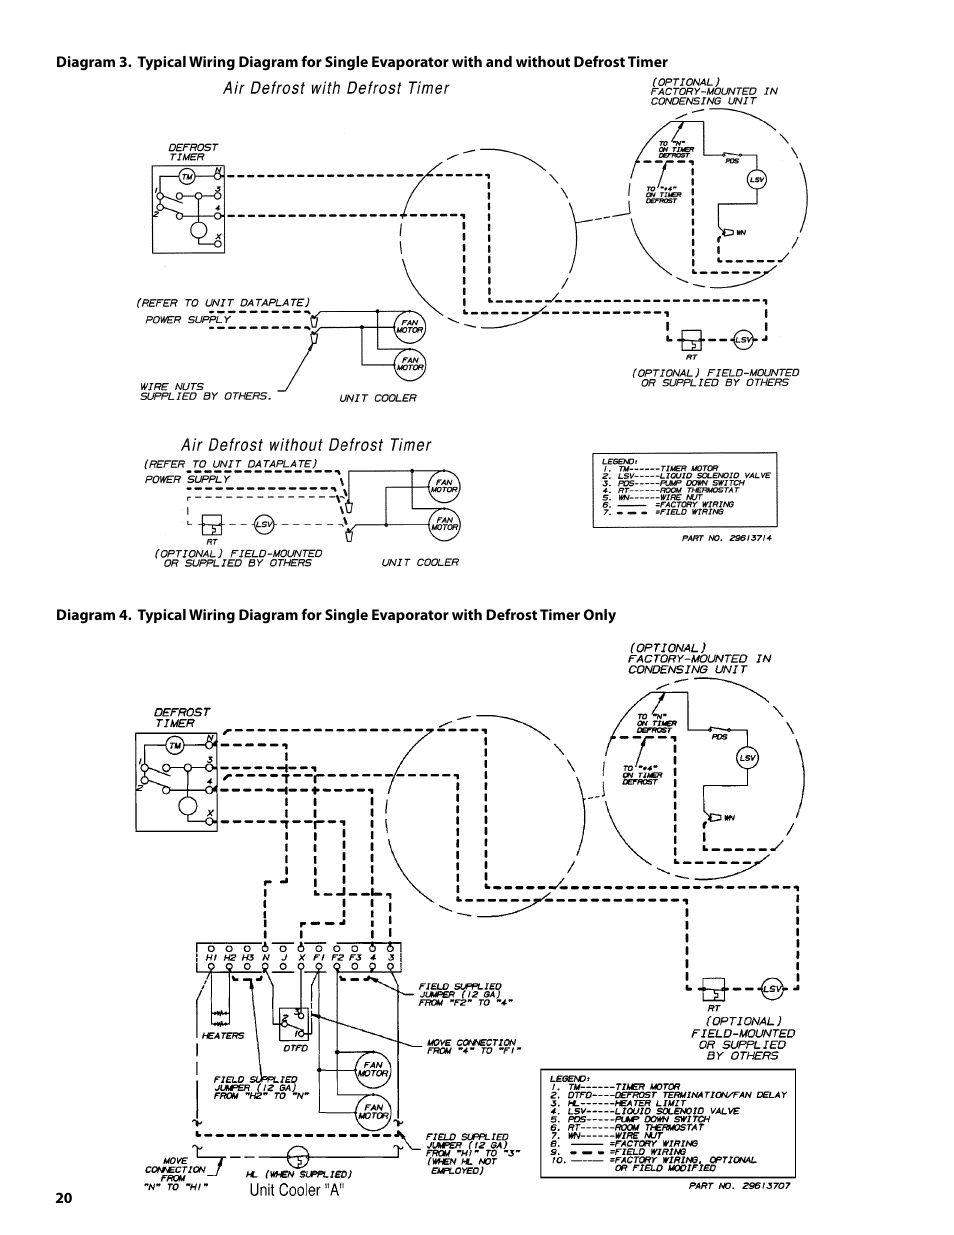 Diagram Freezer Evaporator Coil Wiring Diagram Full Version Hd Quality Wiring Diagram Pdfbaskets Cafesecret Fr